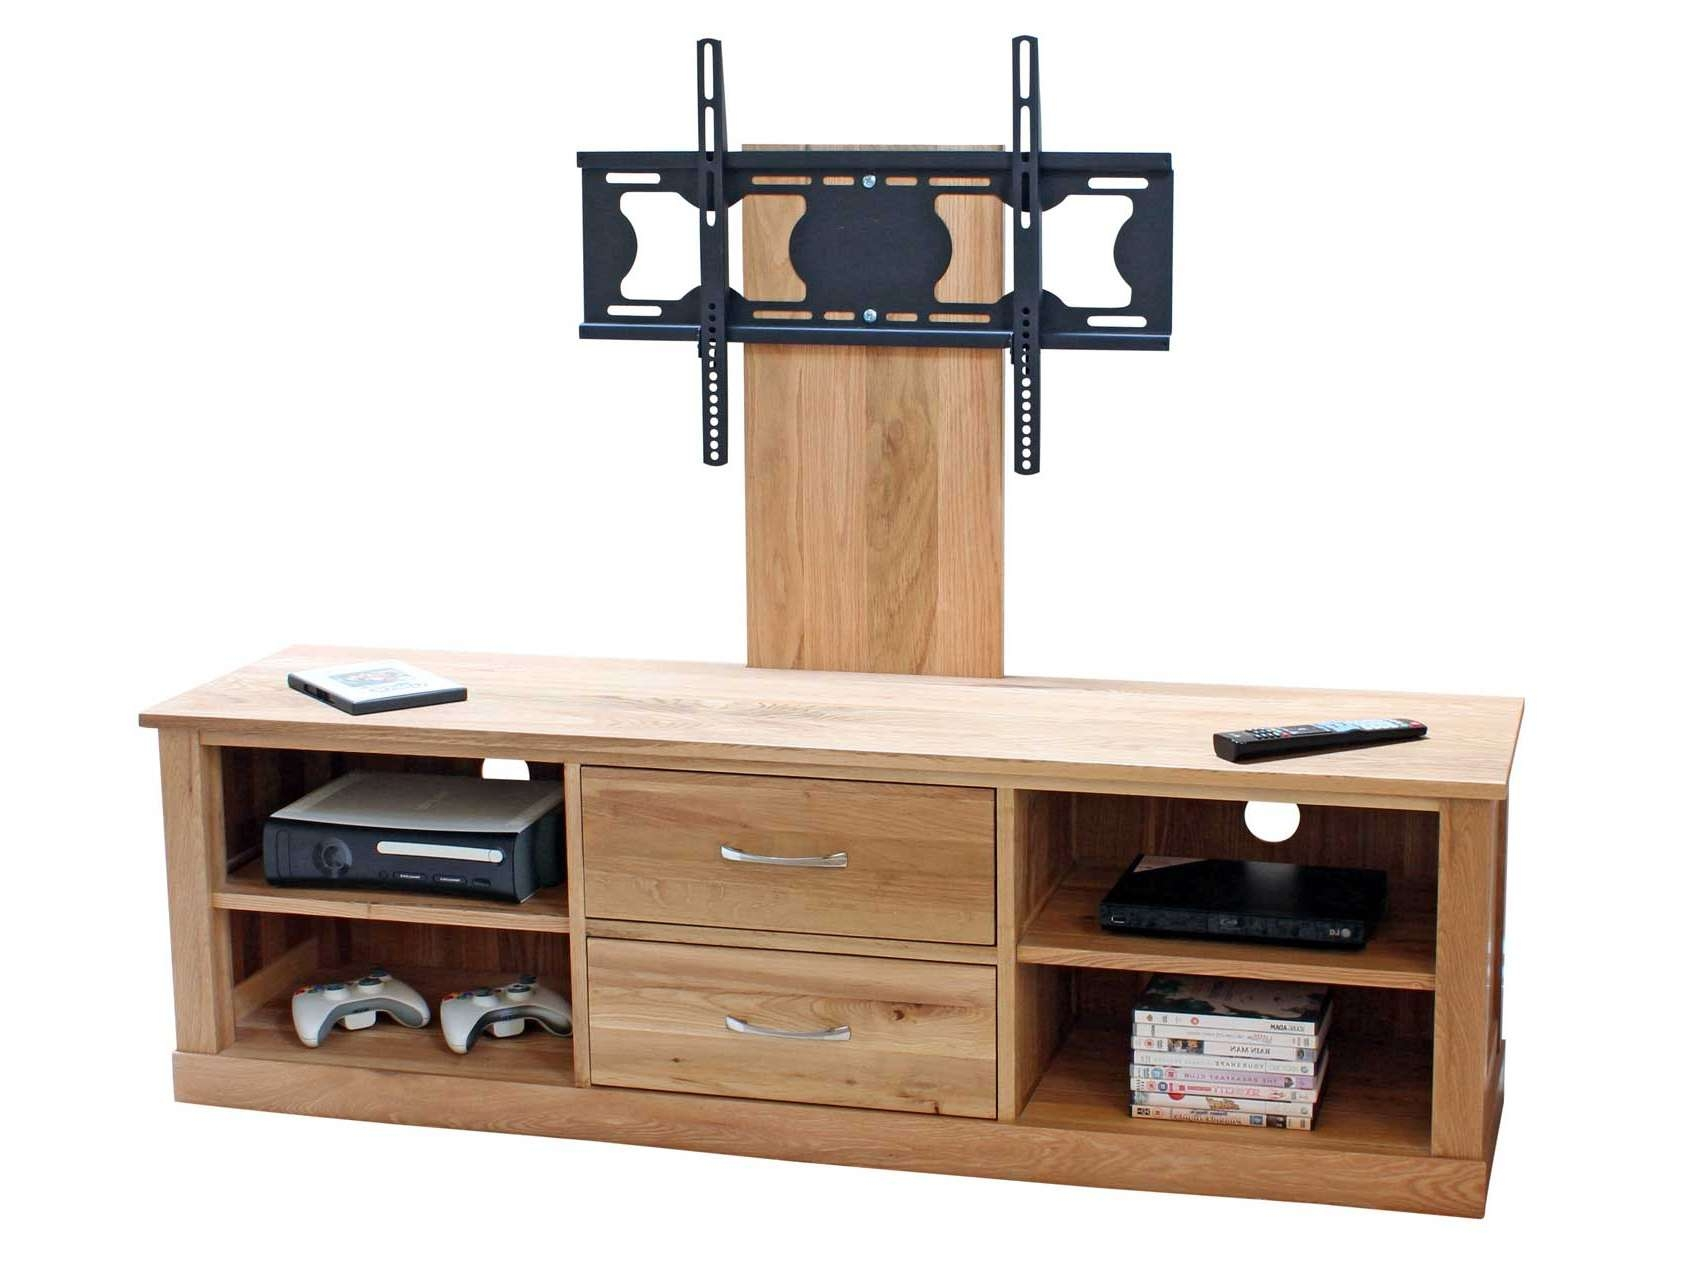 Classic Oak Television Unit With Mount Hampshire Furniture 3 Pertaining To Oak Tv Stands For Flat Screen (View 3 of 15)